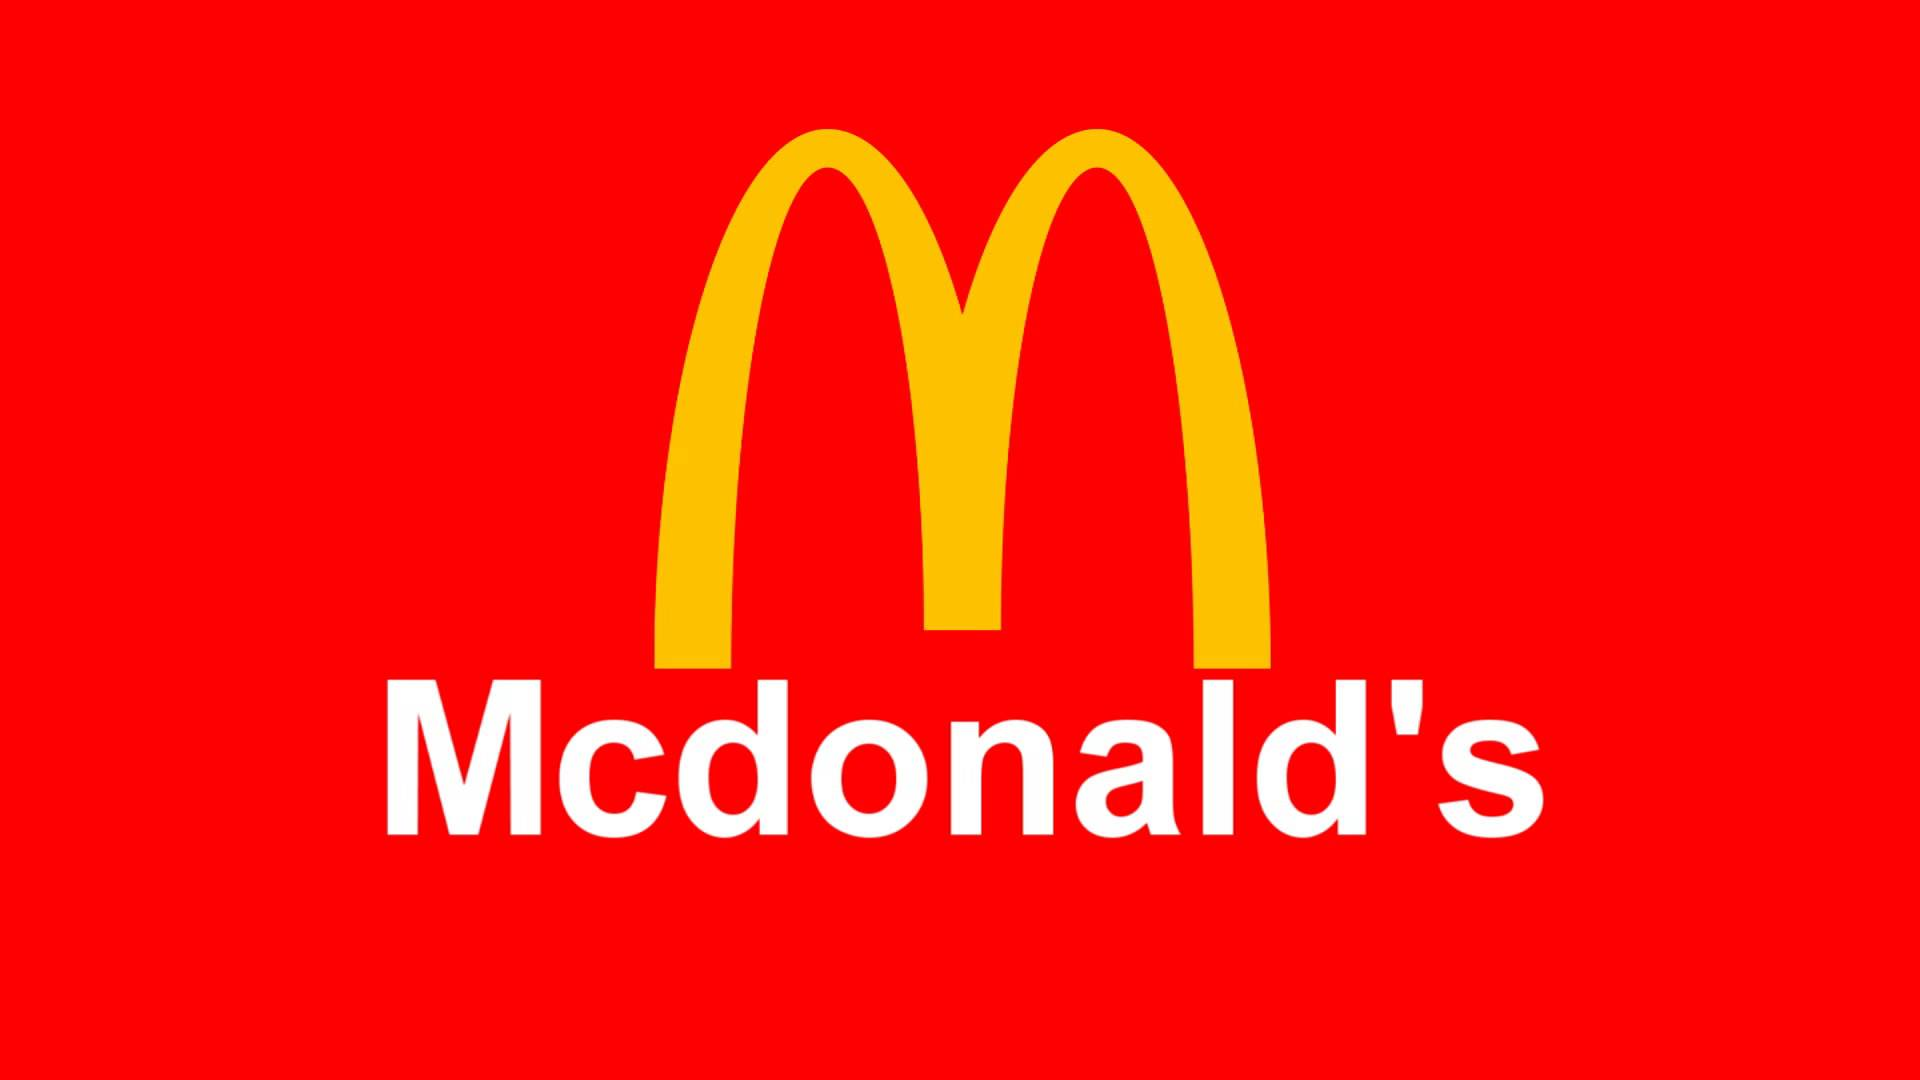 McDonalds will be sponsoring the StarCraft 2 World Championship Series